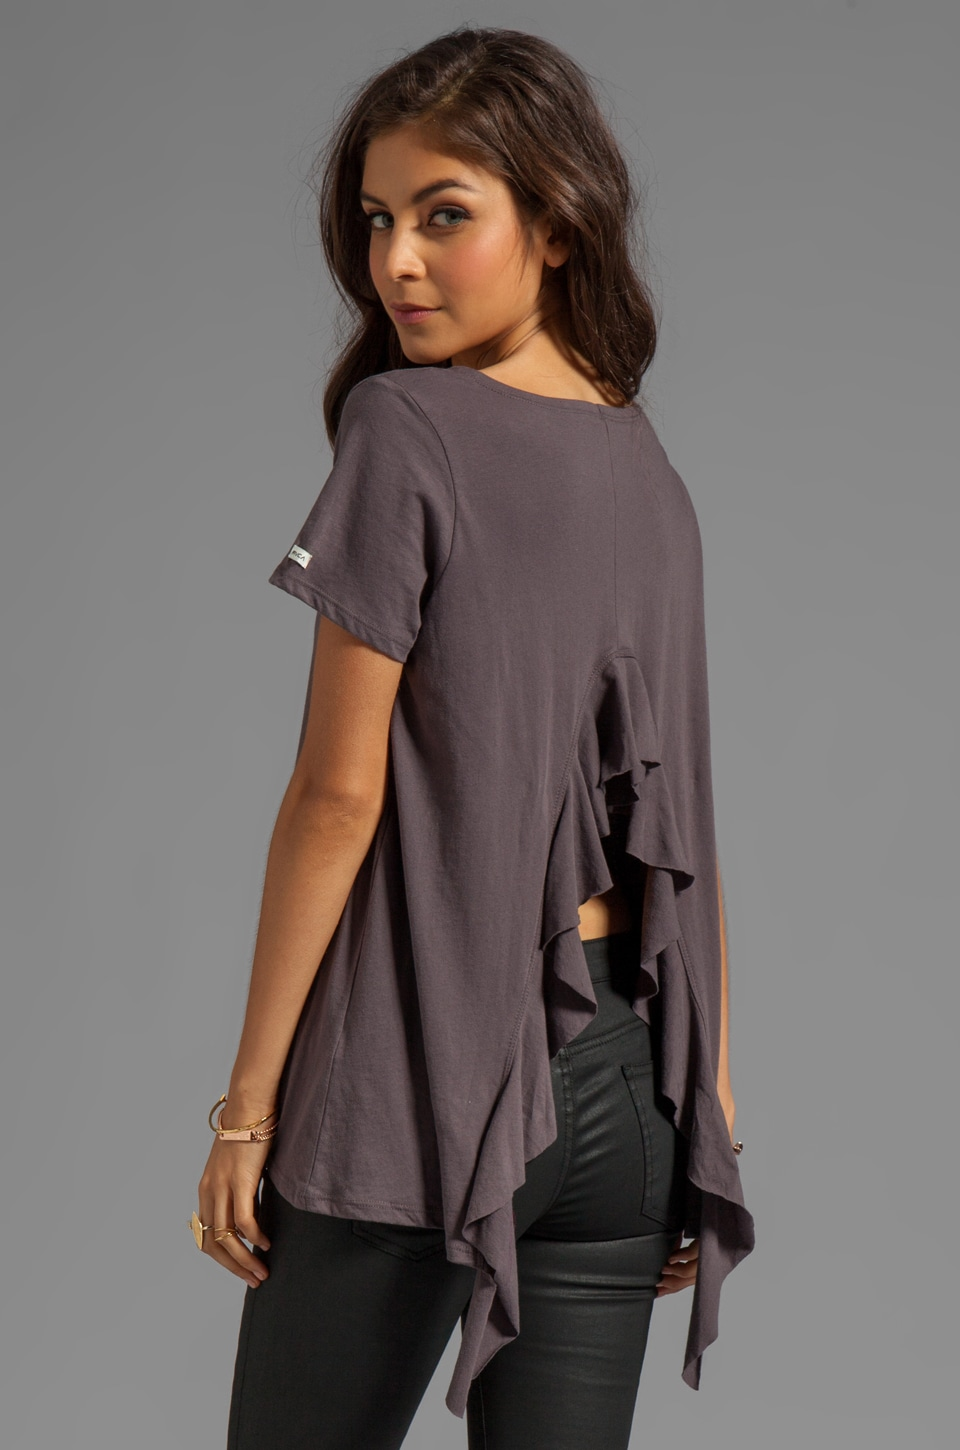 RVCA Hutton S/S Jersey Shirt With Open Back and Self Ruffle Drape in Shale